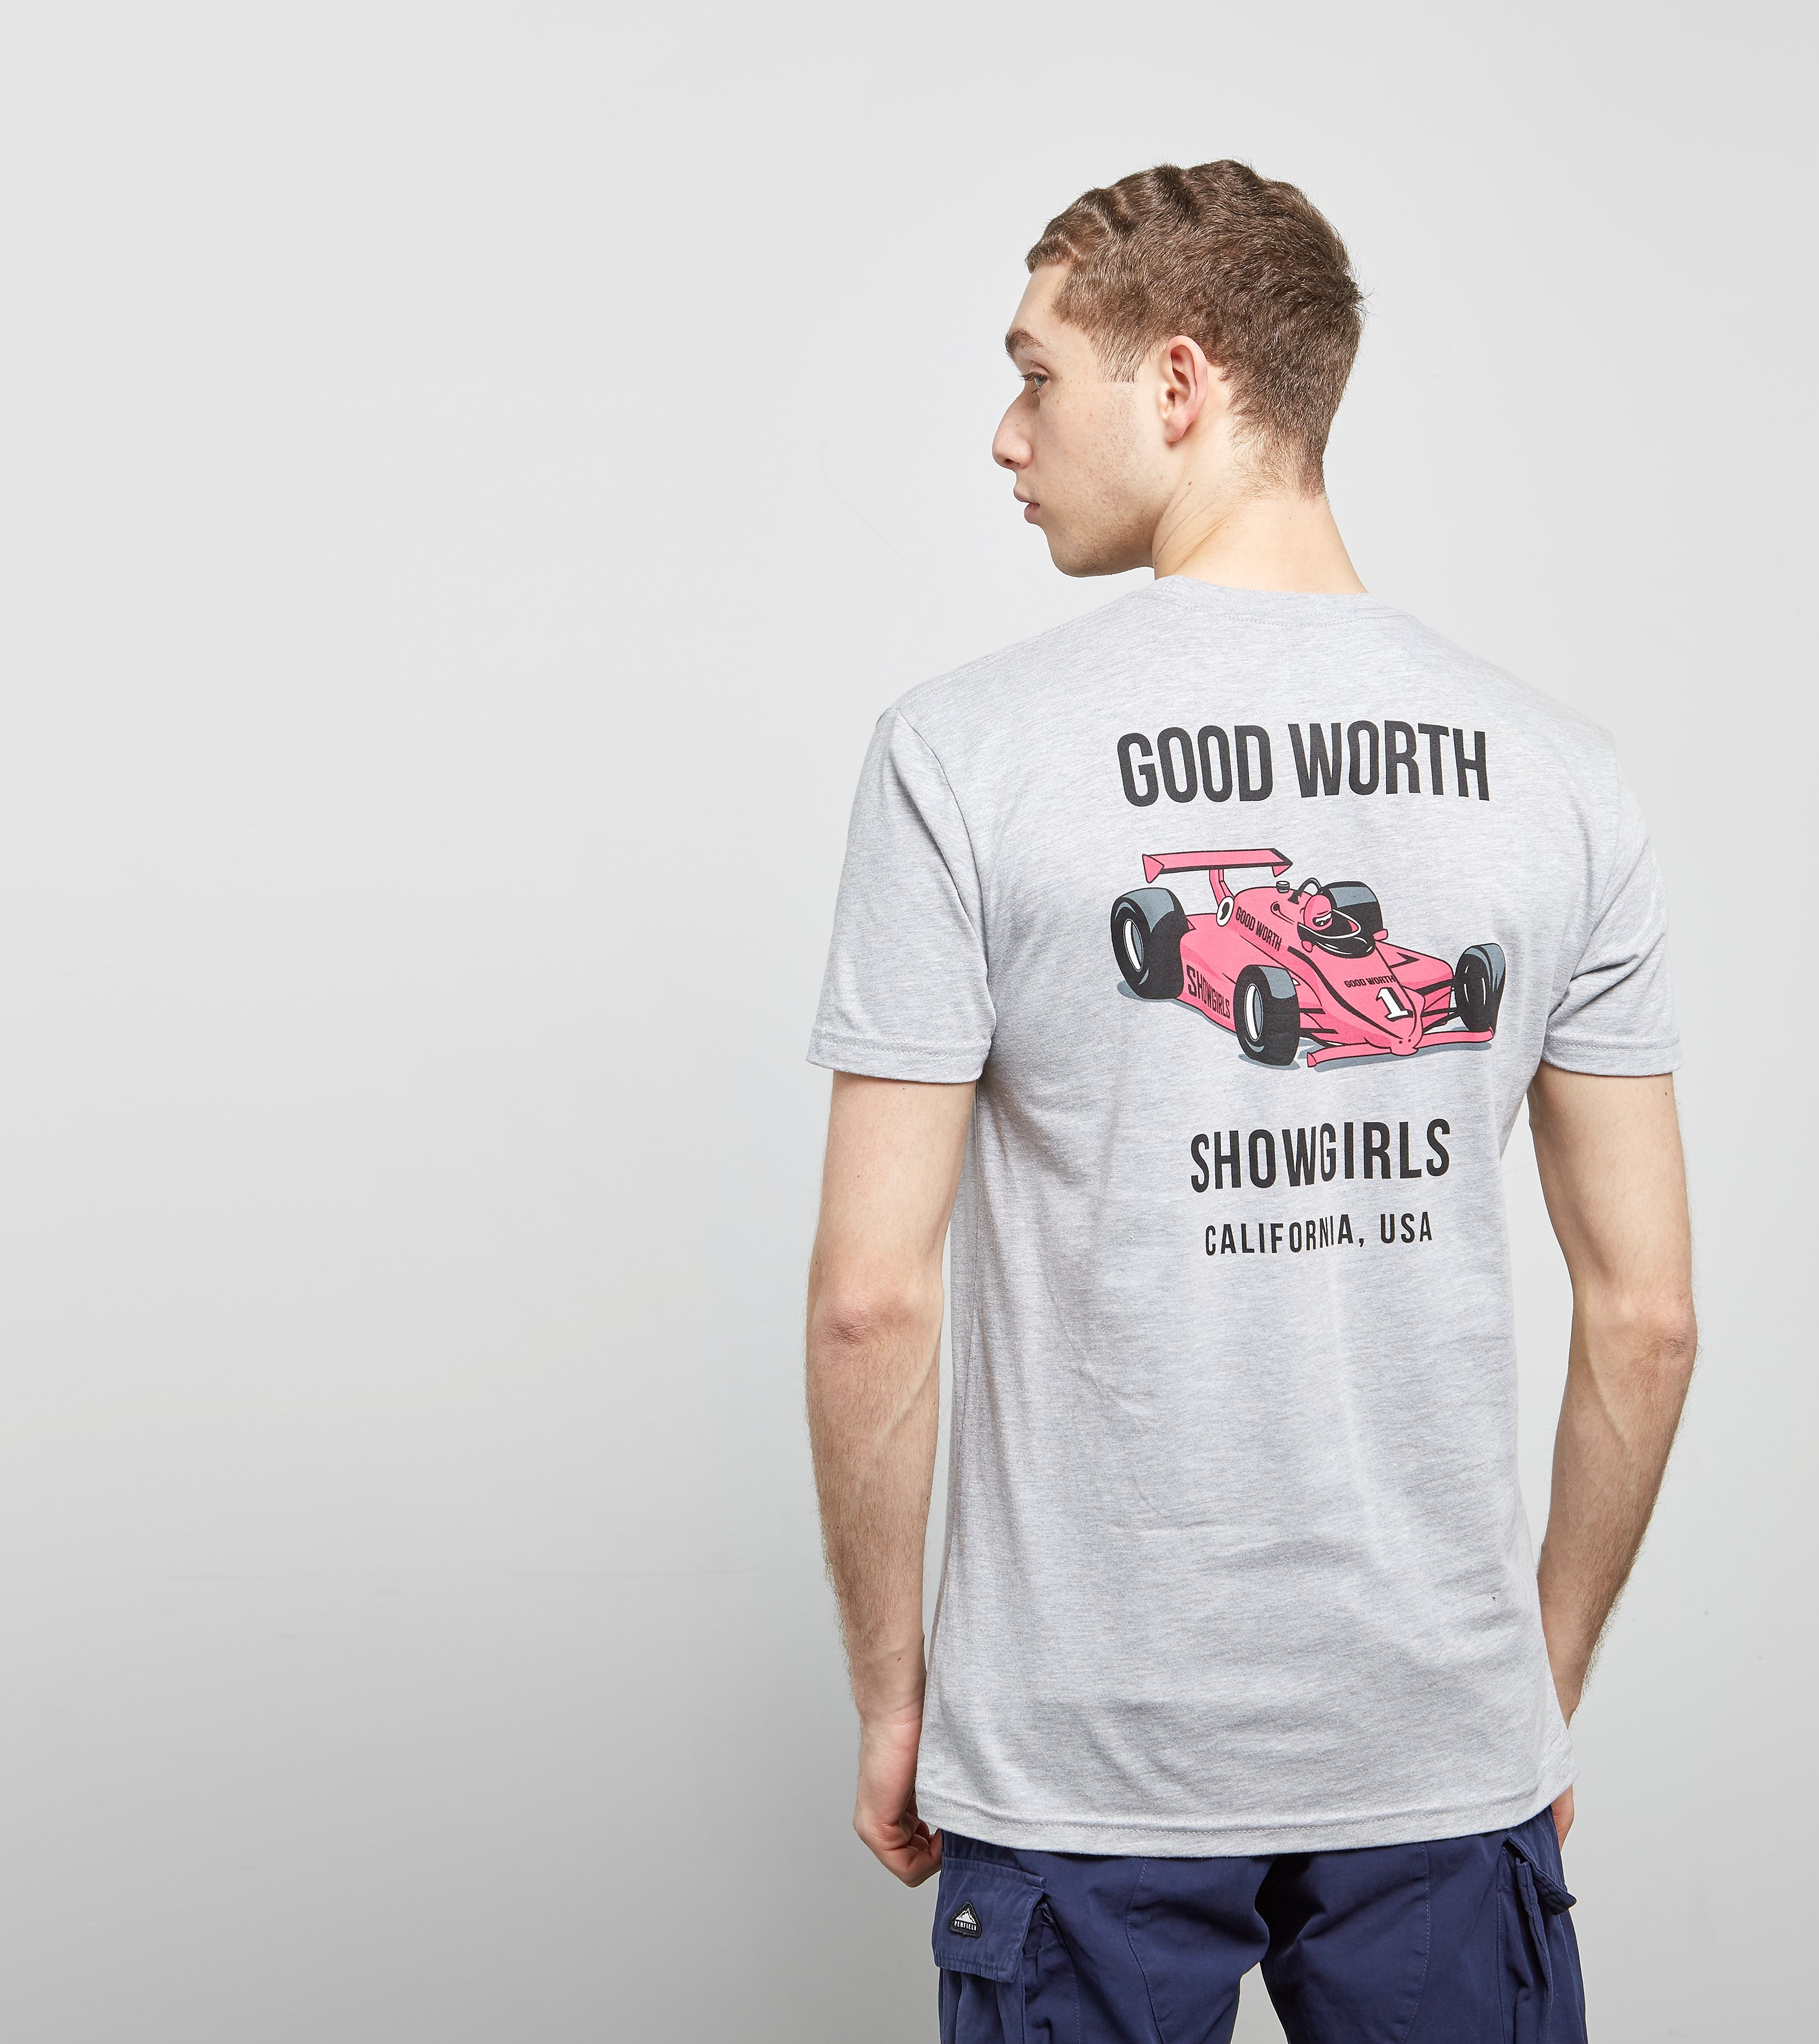 Good Worth & Co Grand Prix T-Shirt